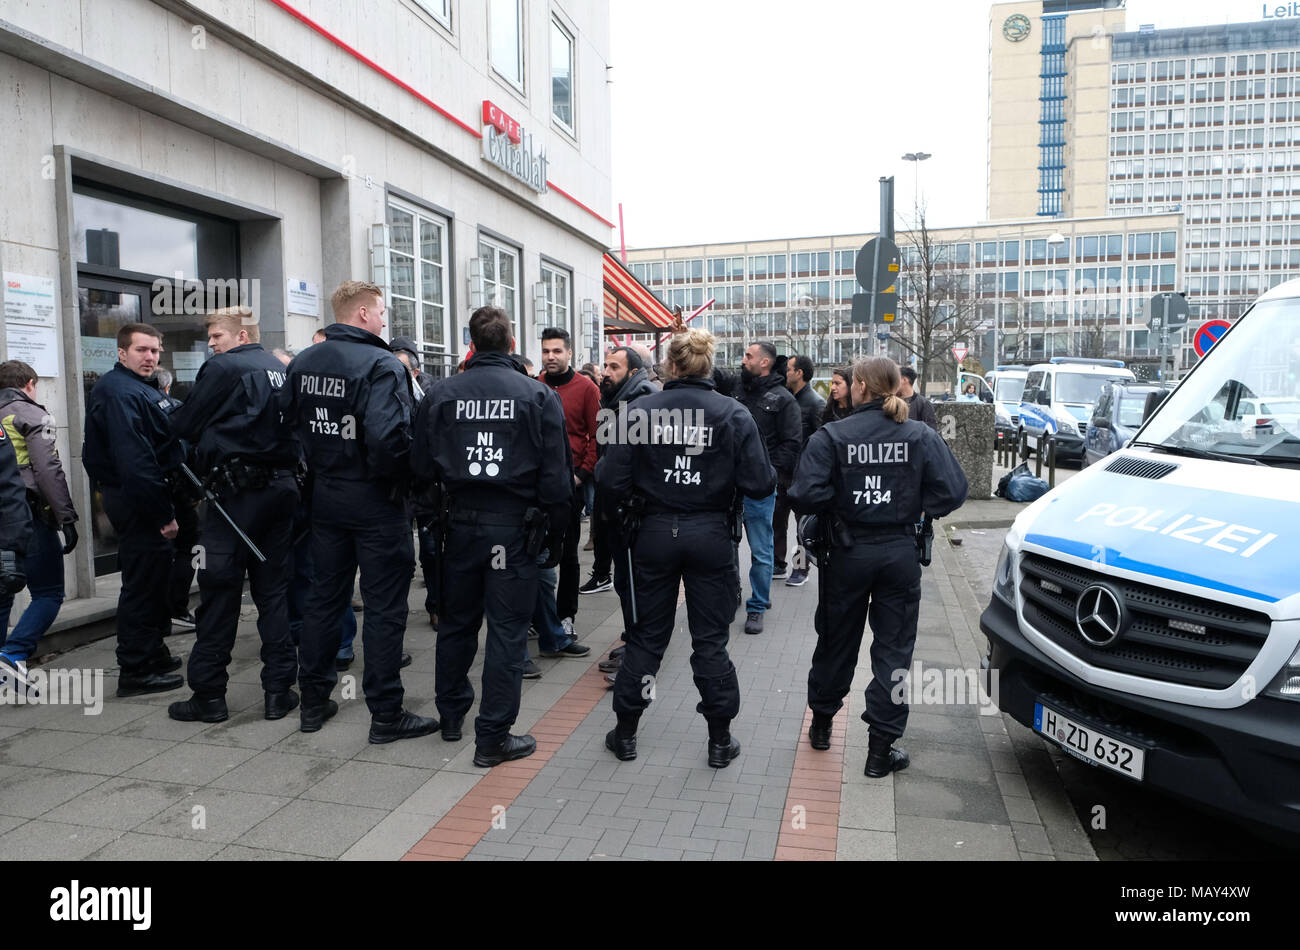 Hannover, Germany. 05 April 2018, Germany, Hannover: Police officers standing during a raid in front of the building of the Kurdish democratic social centre in Hannover. The association is, according to itself, the umbrella organisation of the Kurdish People's Council. Photo: Peter Steffen/dpa Credit: dpa picture alliance/Alamy Live News - Stock Image